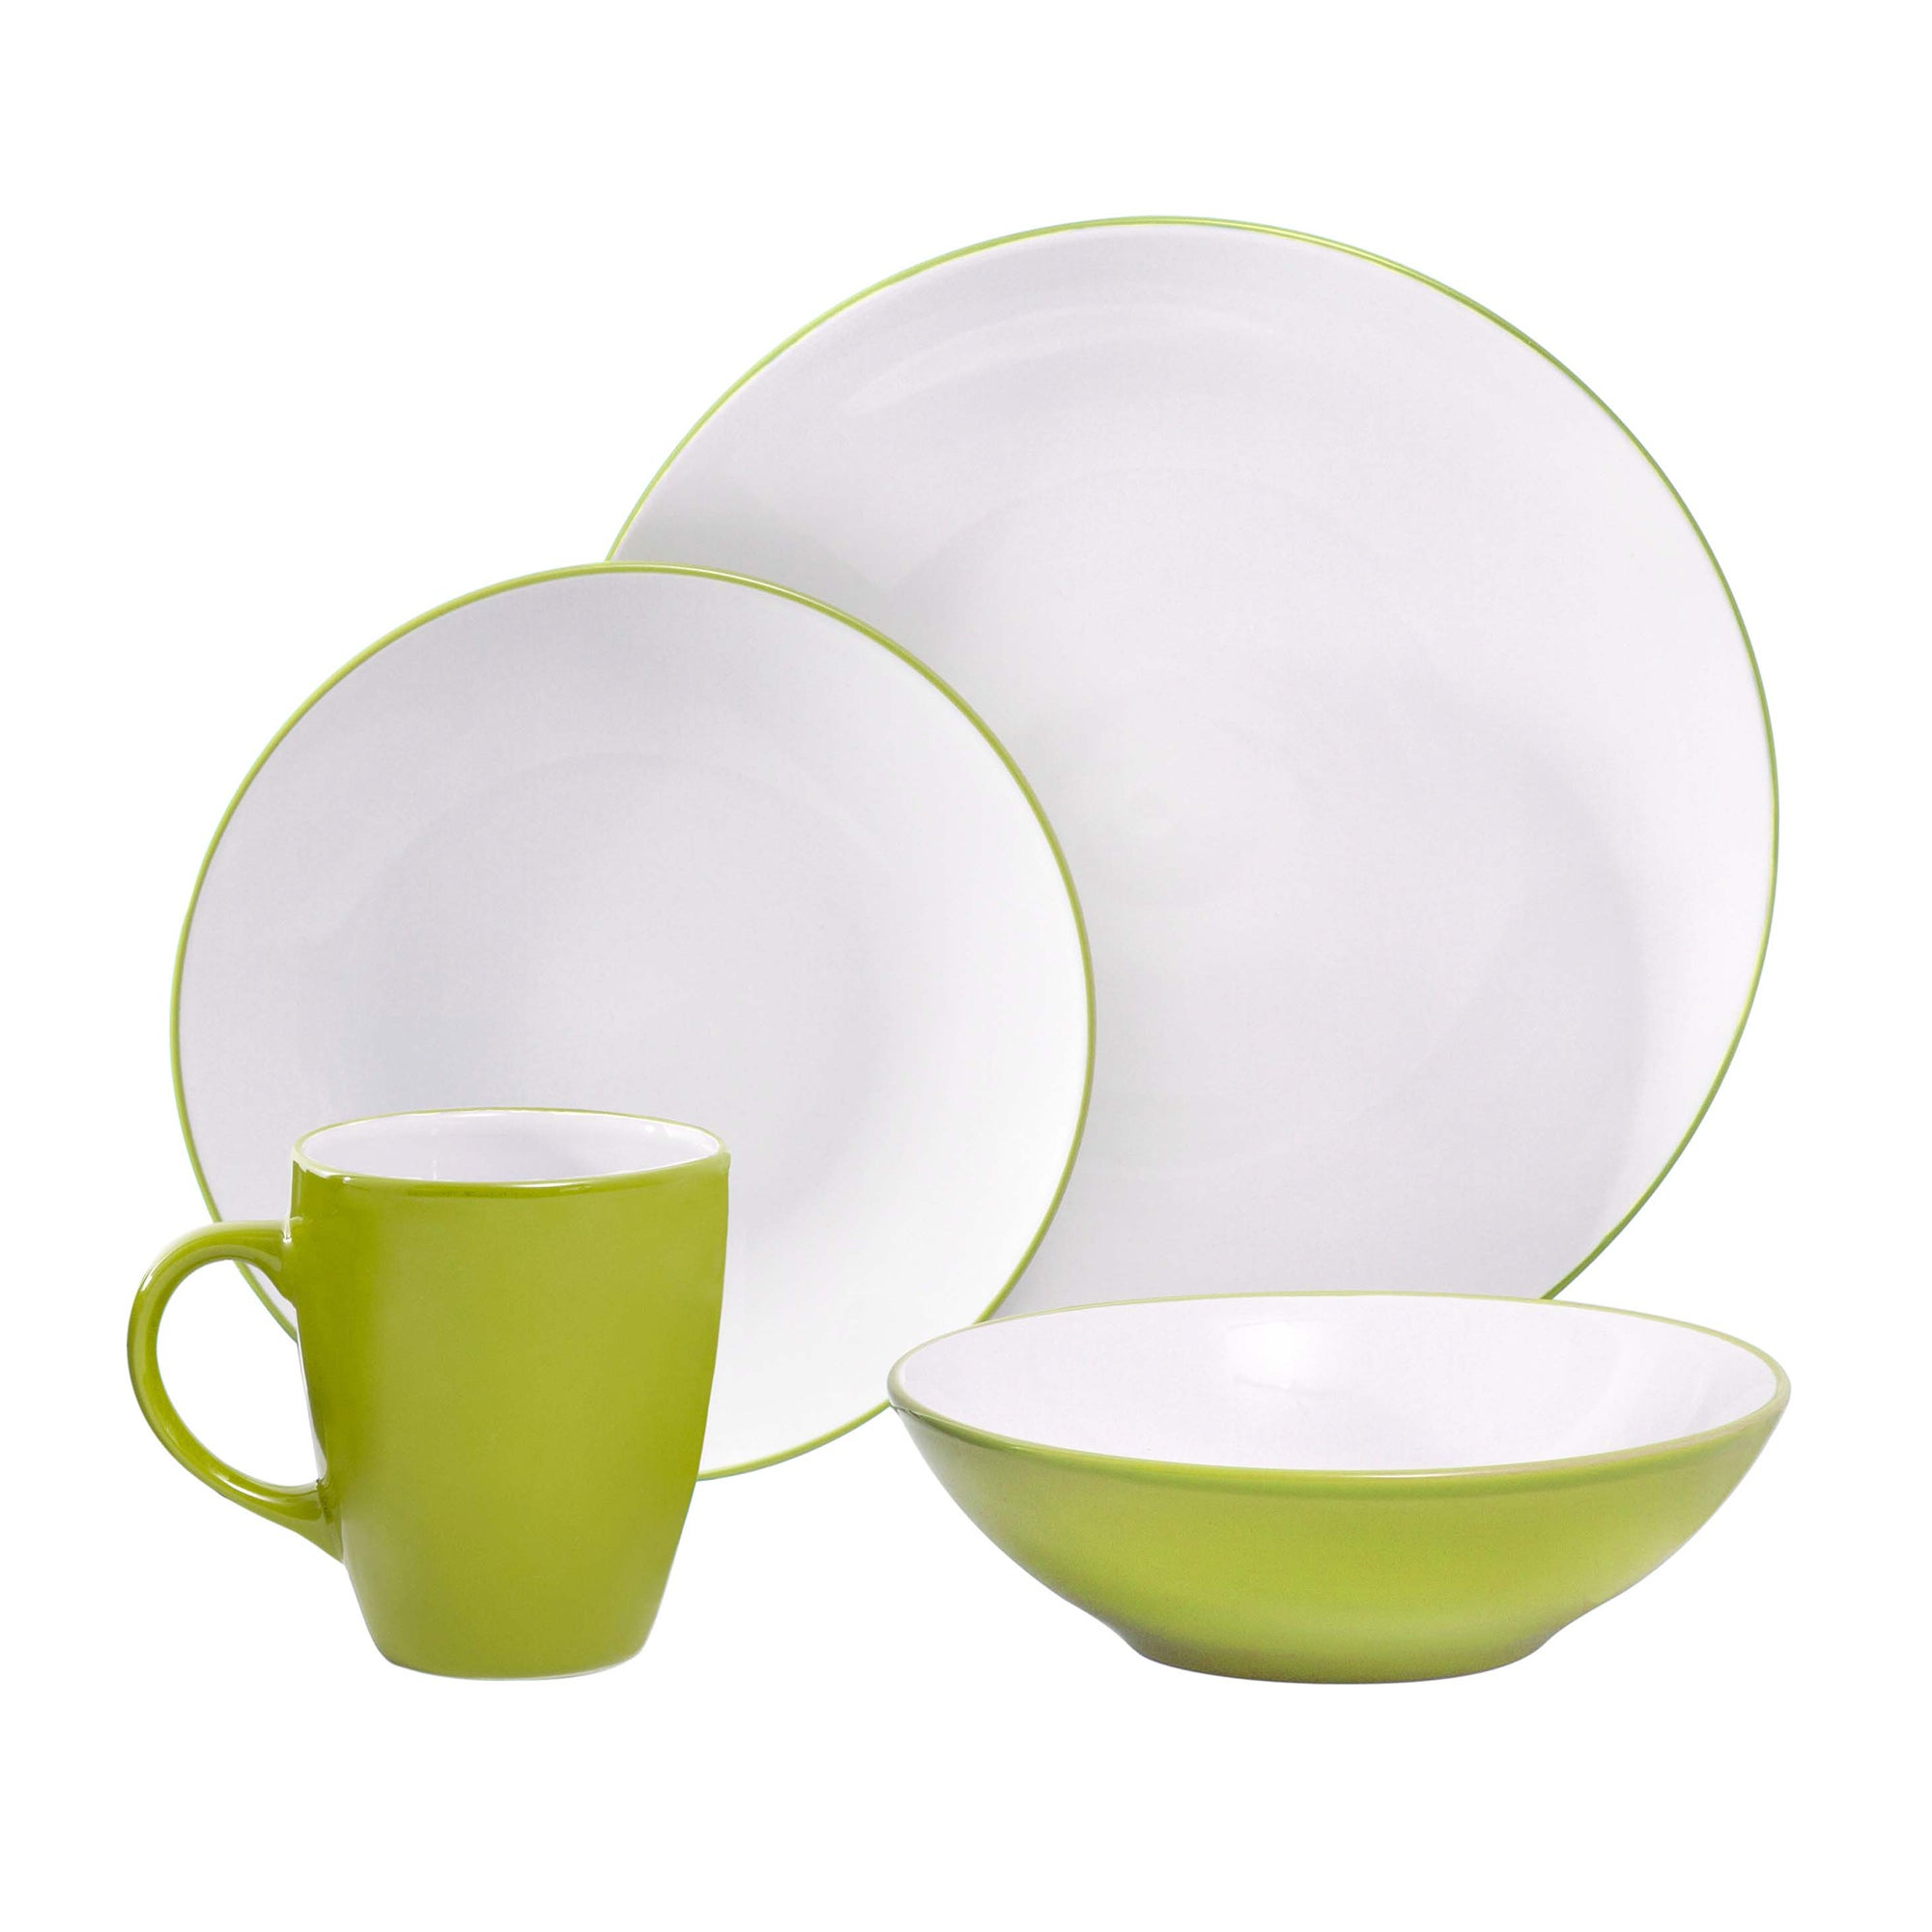 Image of Spectrum 16 Piece Lime Dinner Set Lime